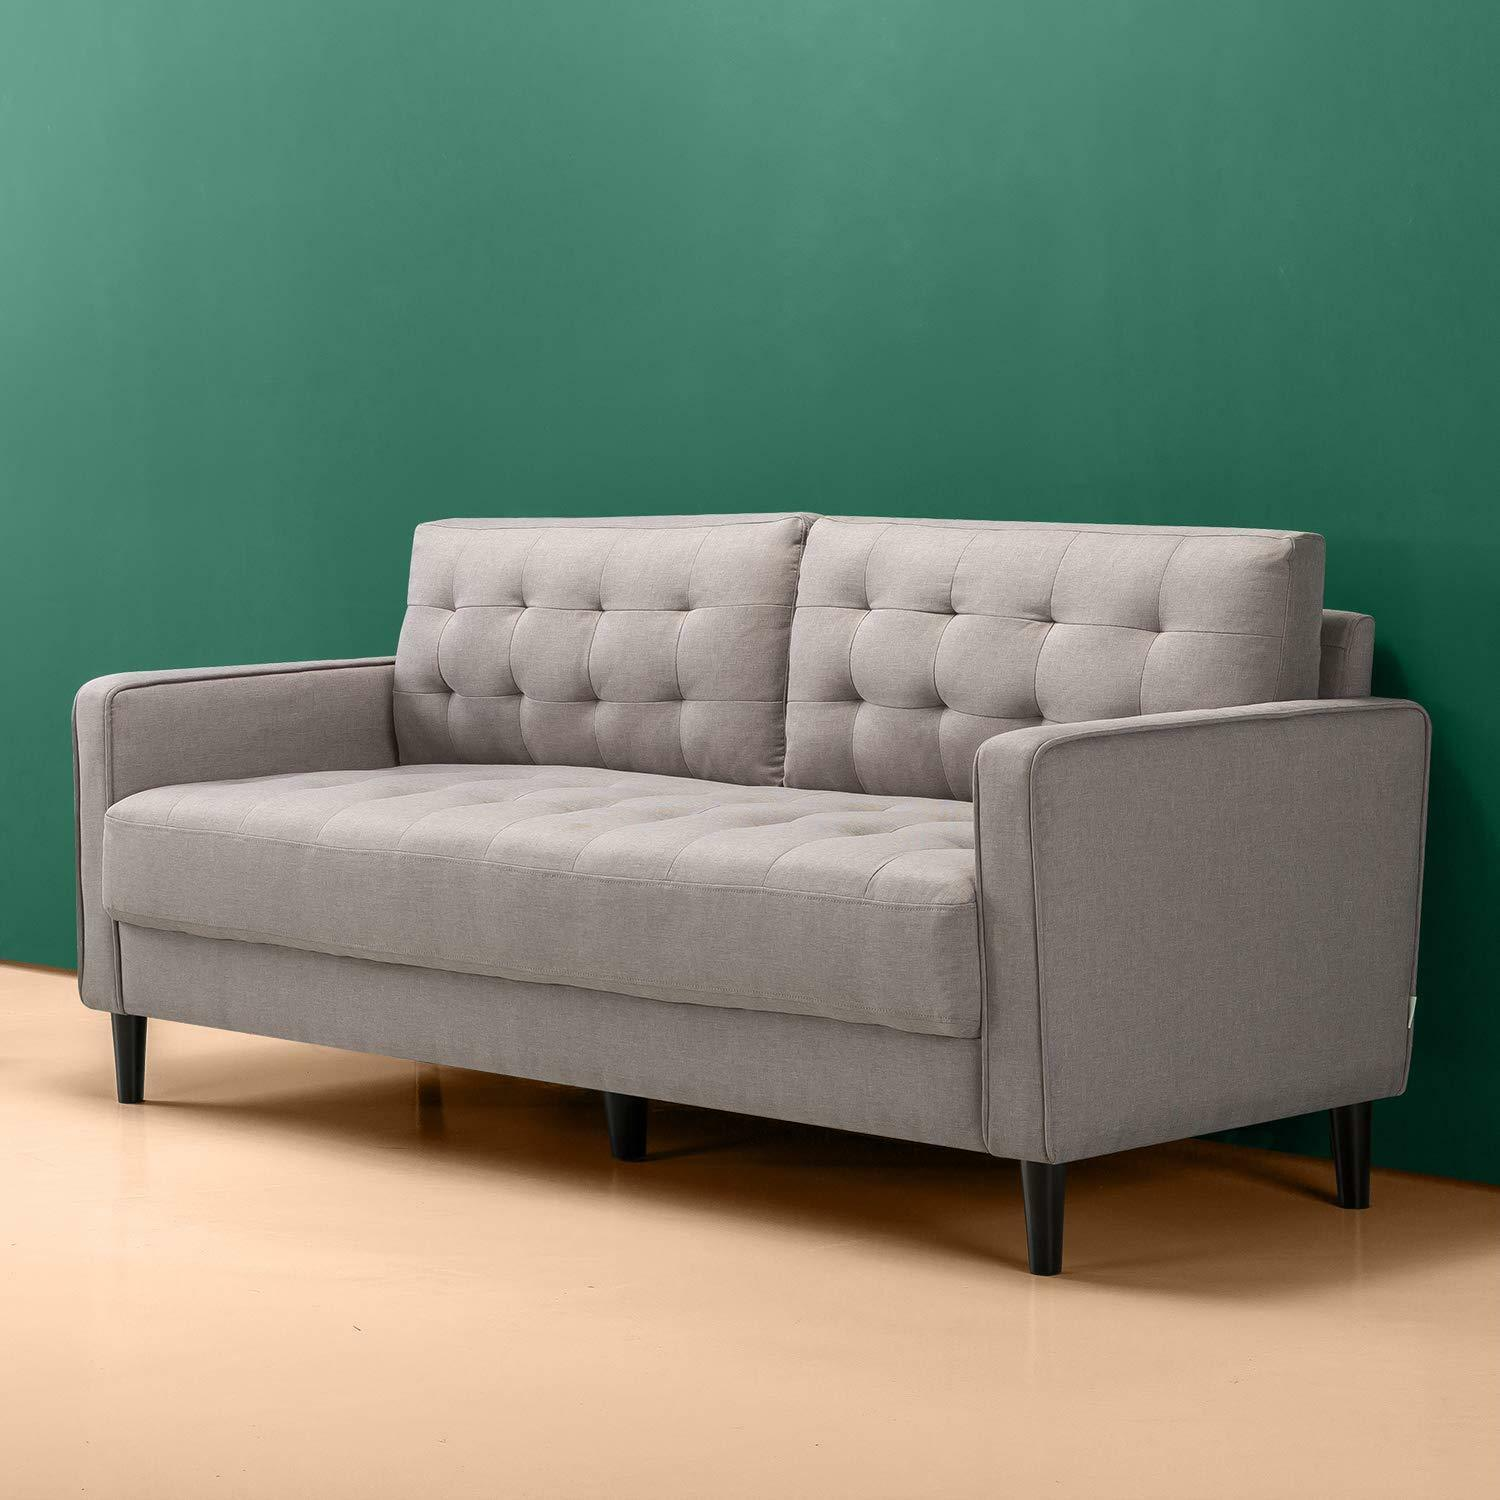 Picture of: Modern Sofa Couch Love Seat Living Room Porch Bedroom Grey Gray Loveseat Chair For Sale Online